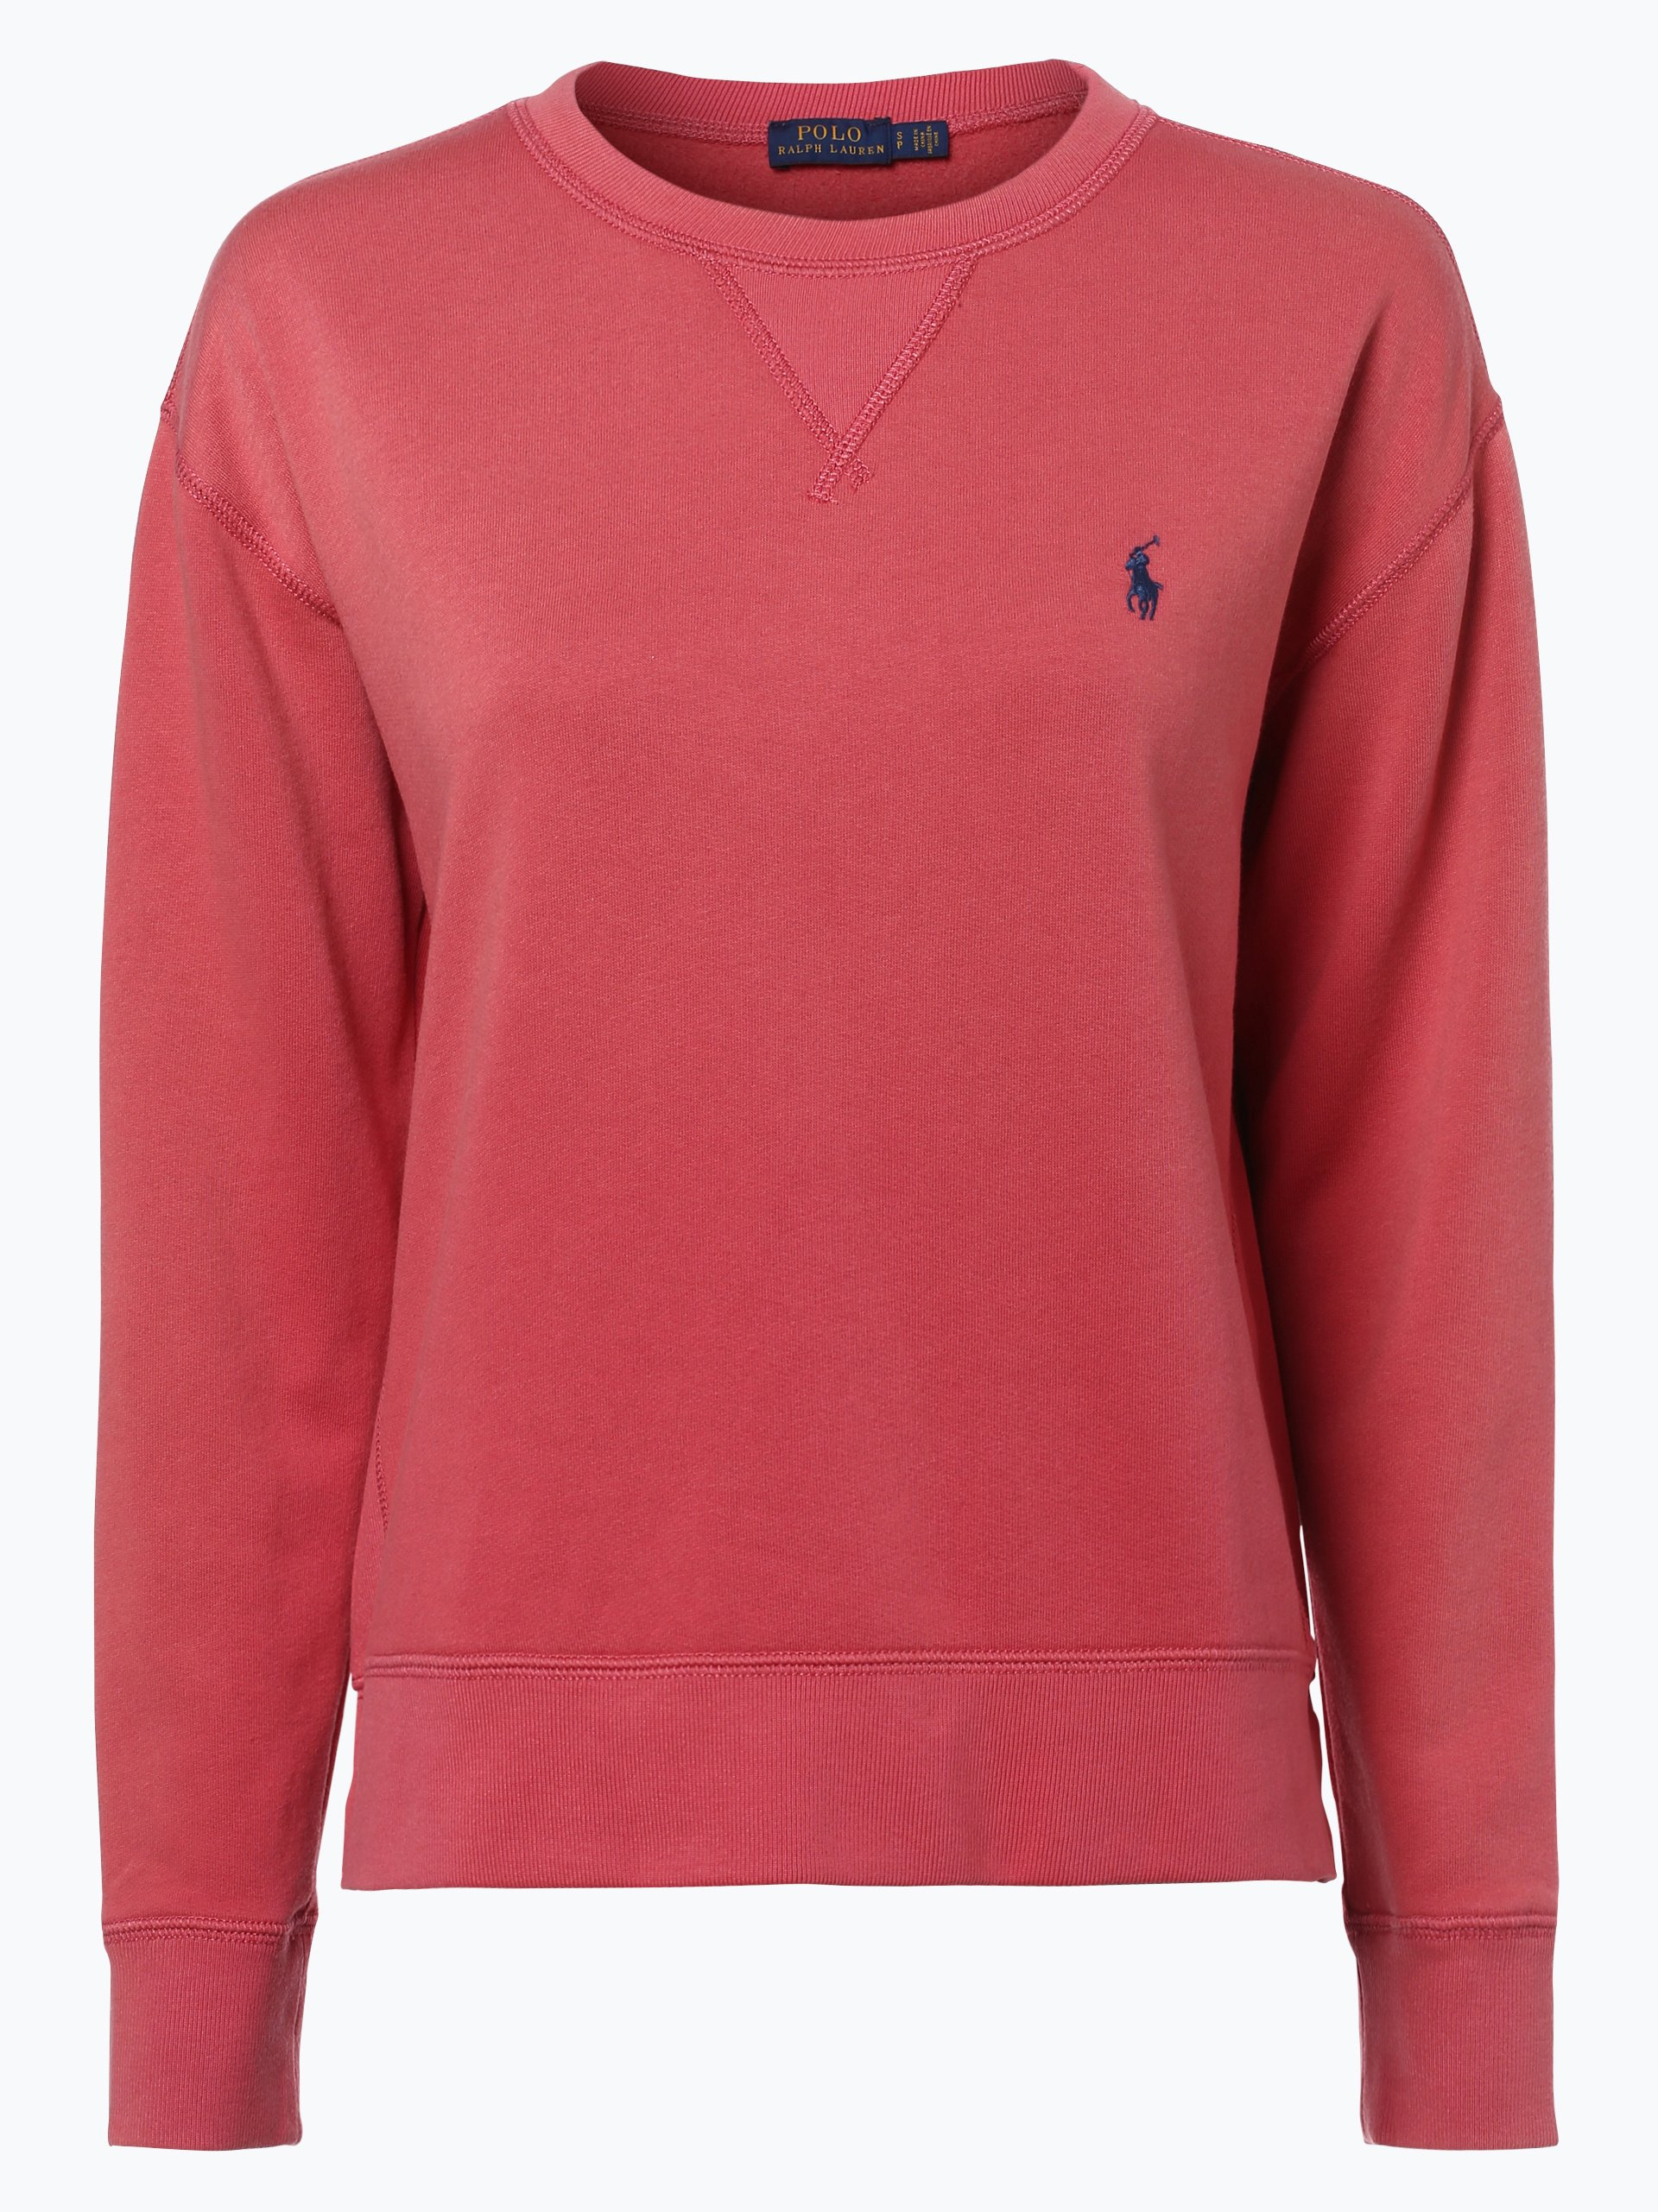 polo ralph lauren damen sweatshirt rot uni online kaufen. Black Bedroom Furniture Sets. Home Design Ideas